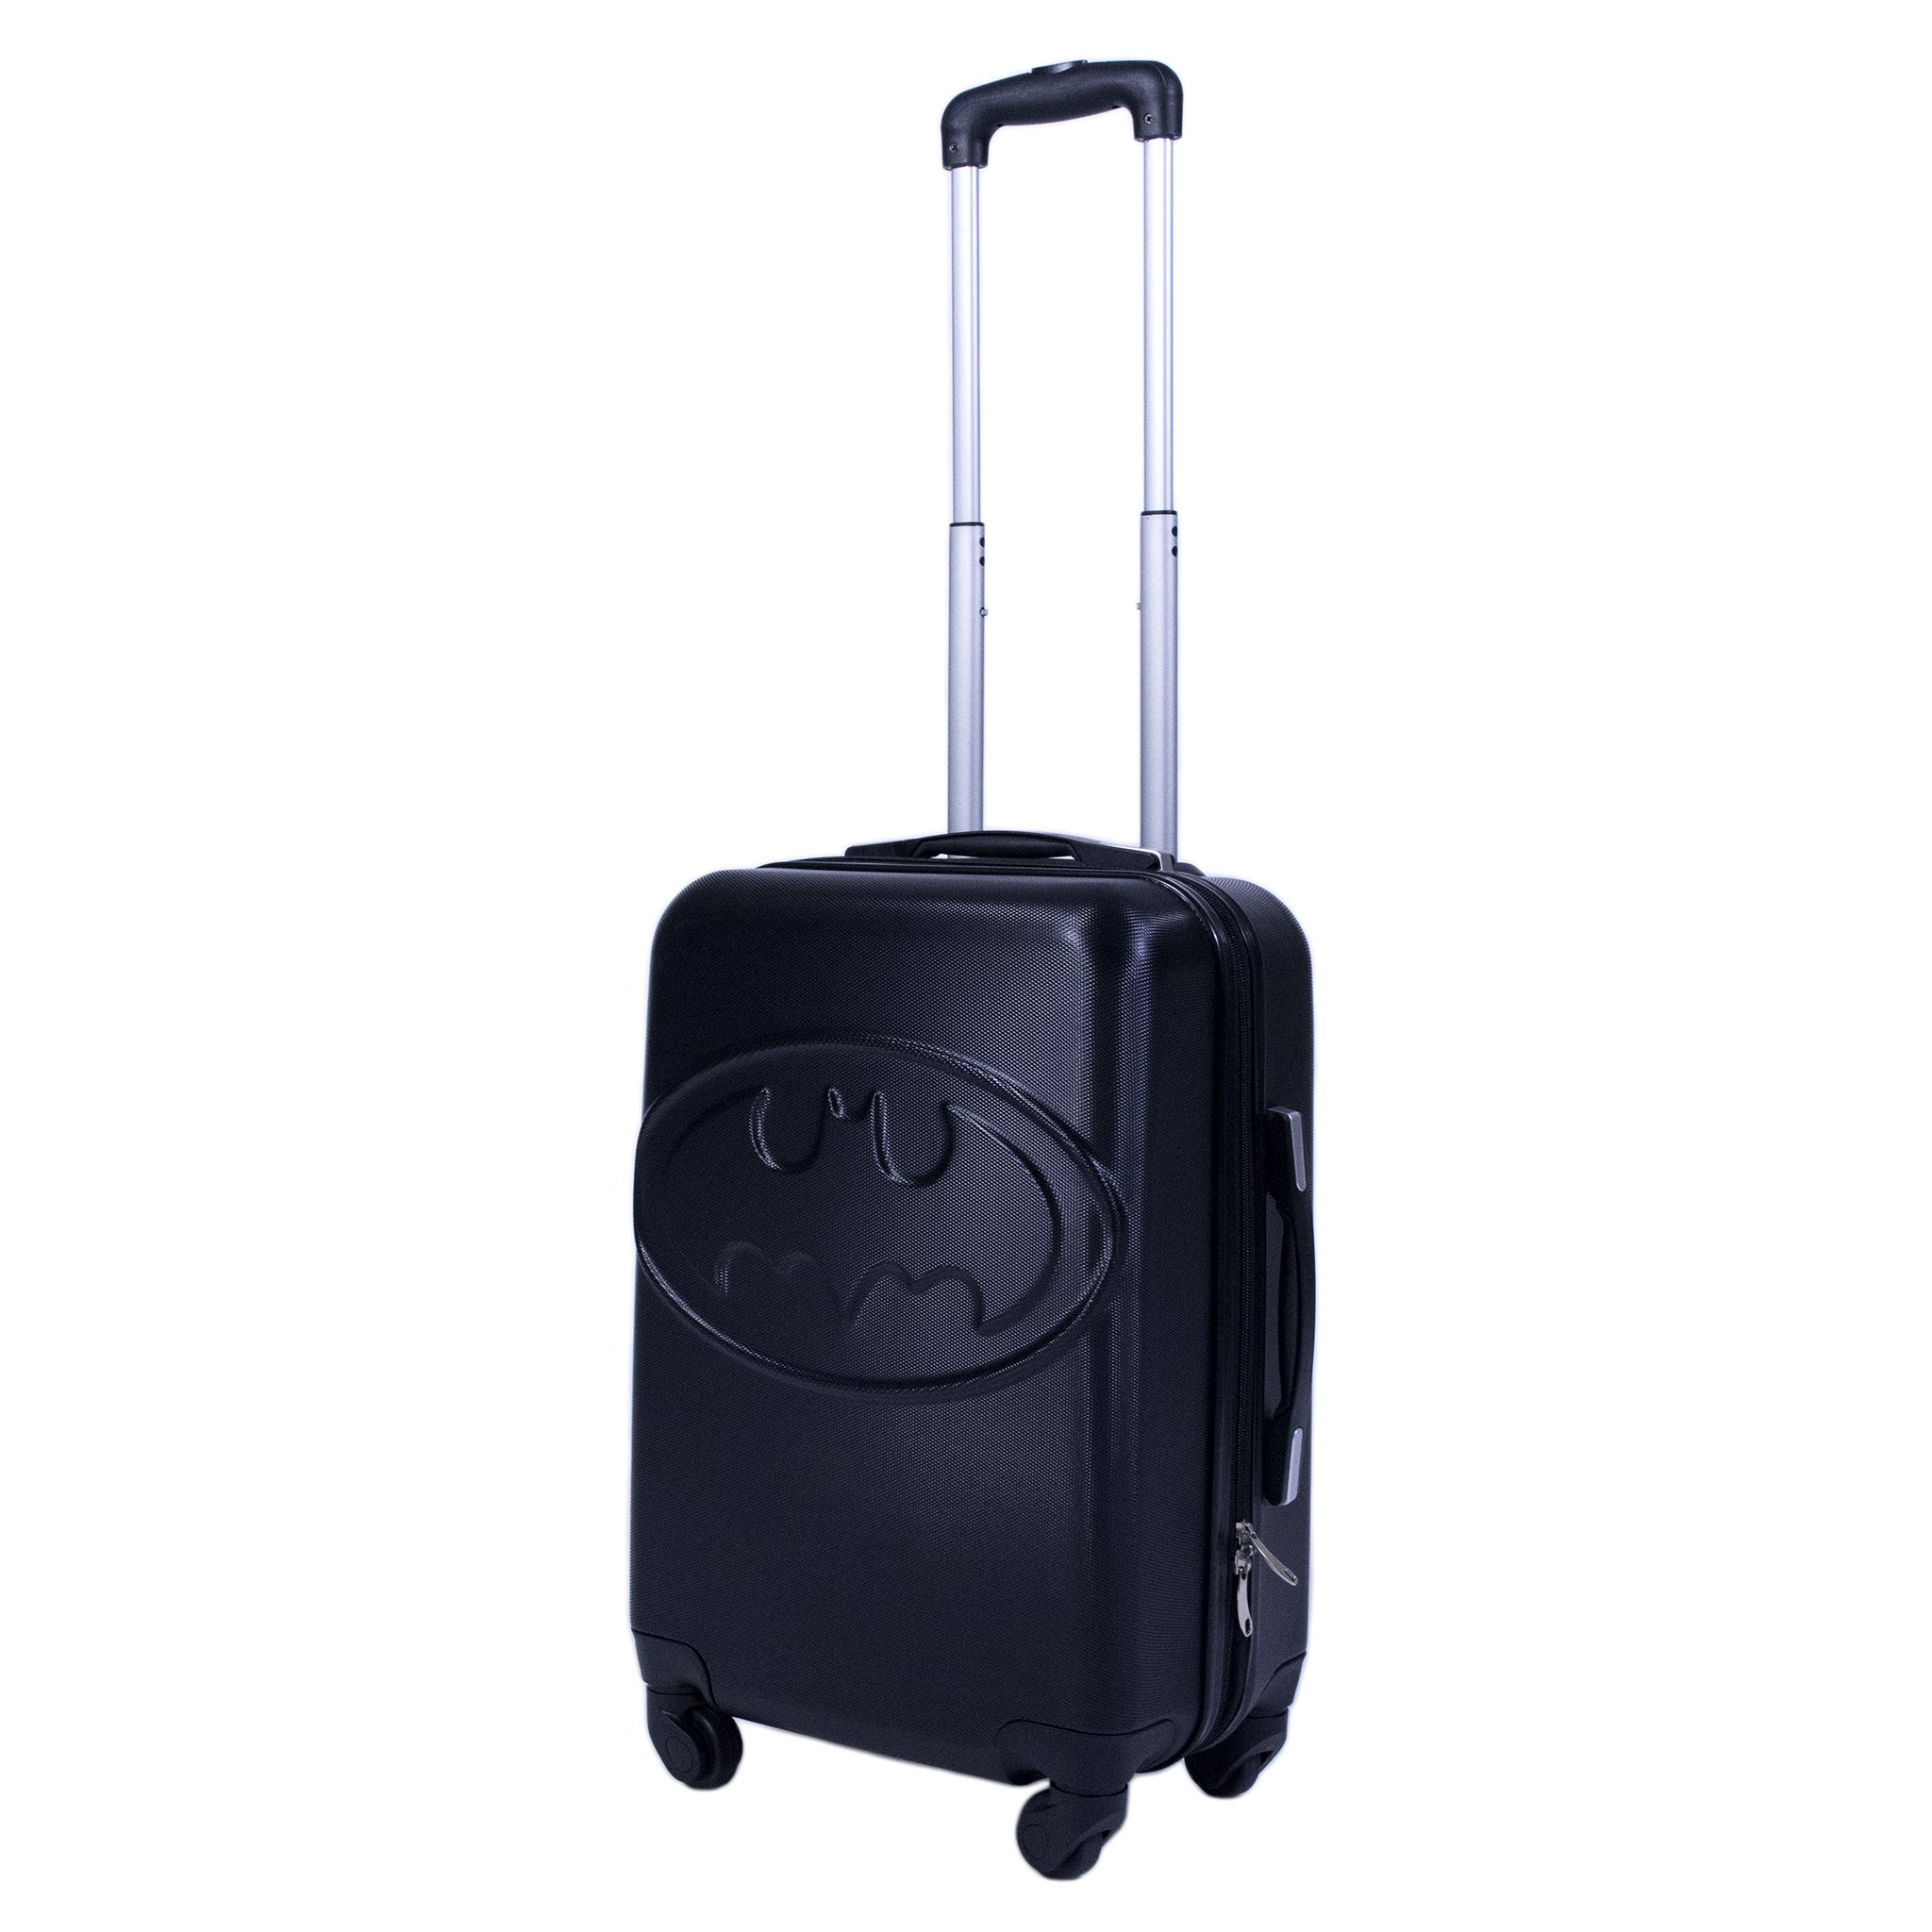 Batman 211n Hardsided Luggage Spinner, Black by Ful (Image #4)